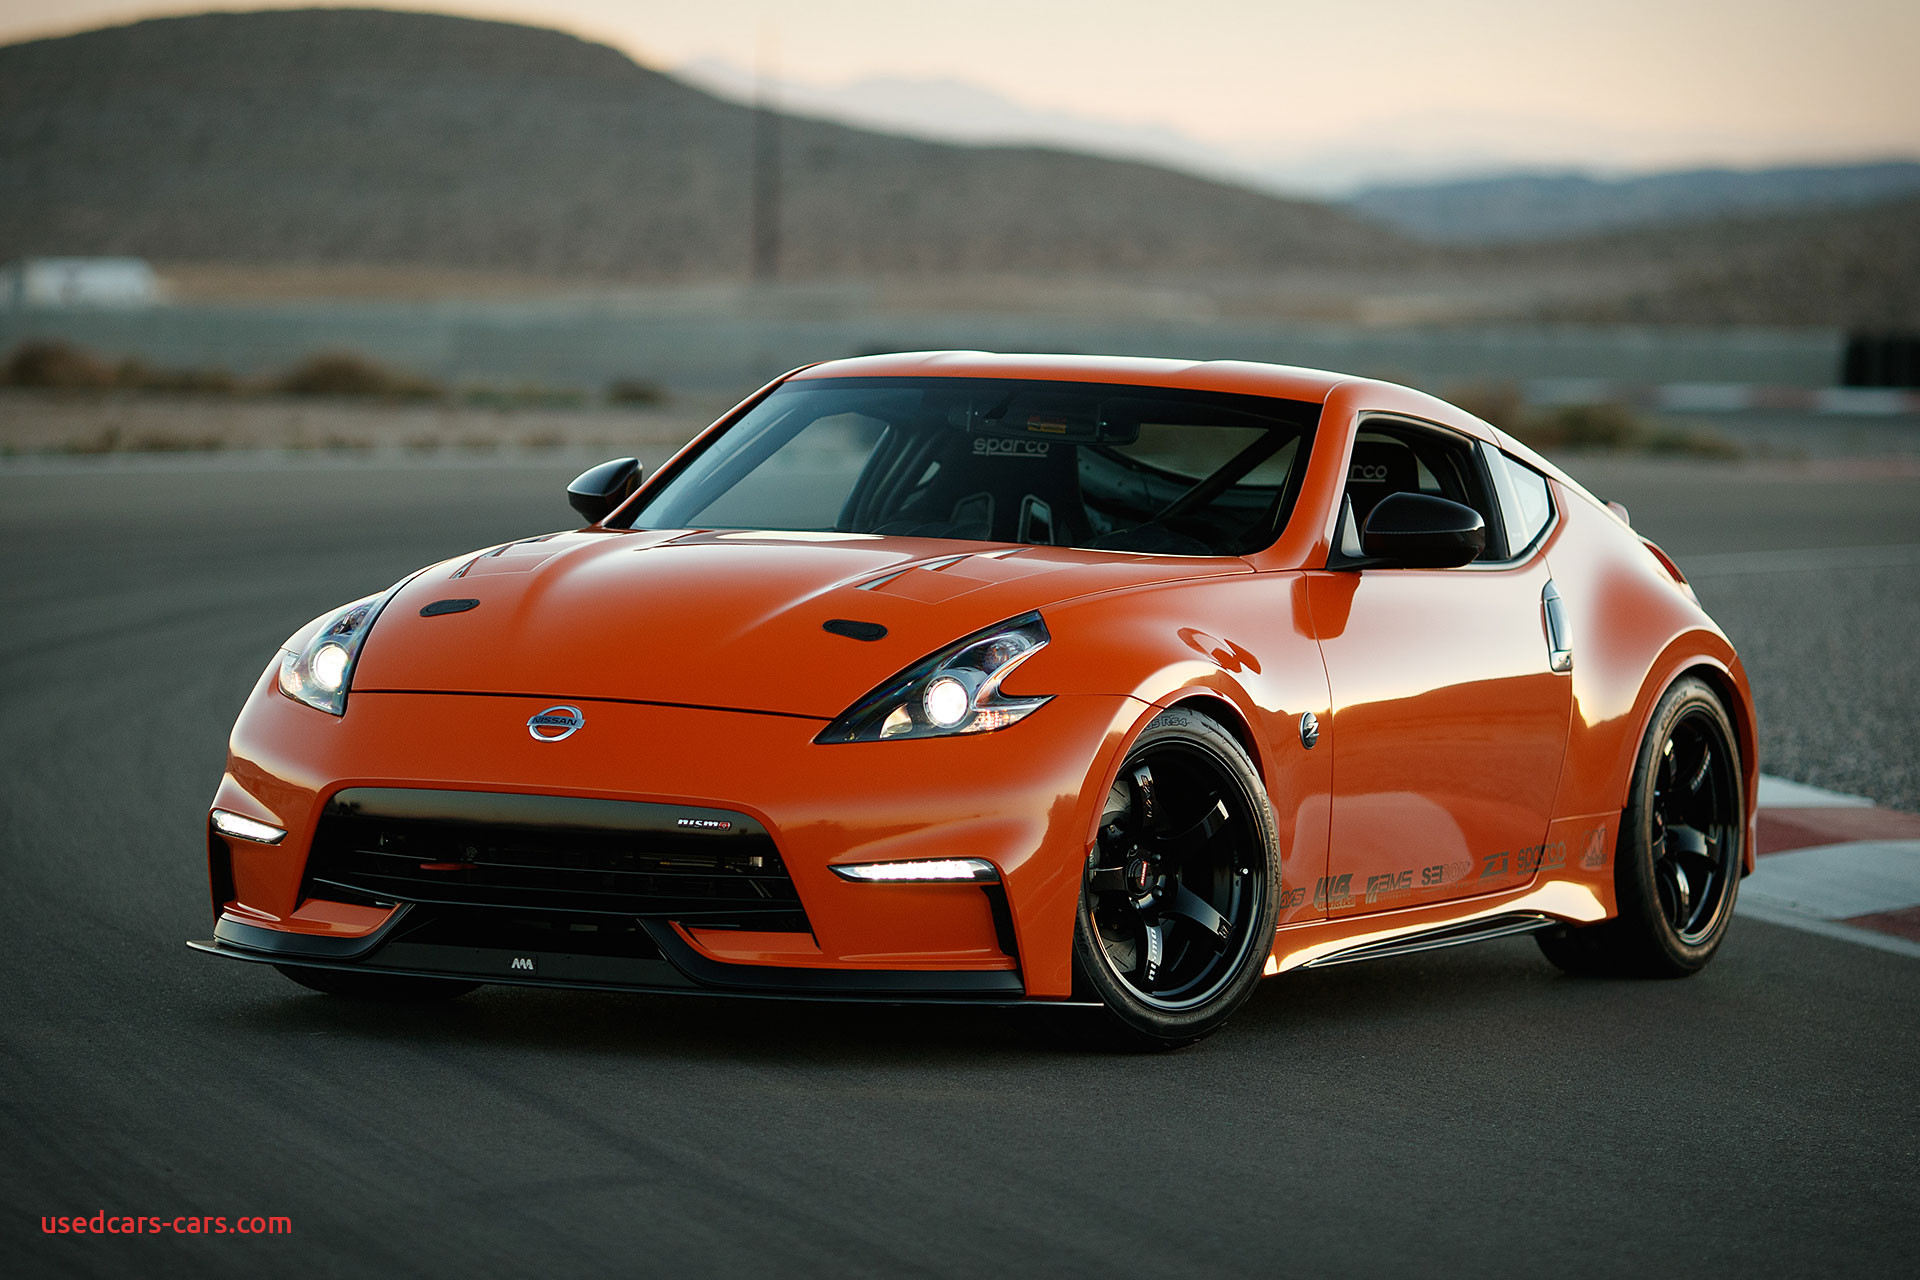 Nismo 370z Beautiful Nissan 370z Project Clubsport 23 Coupe Uncrate